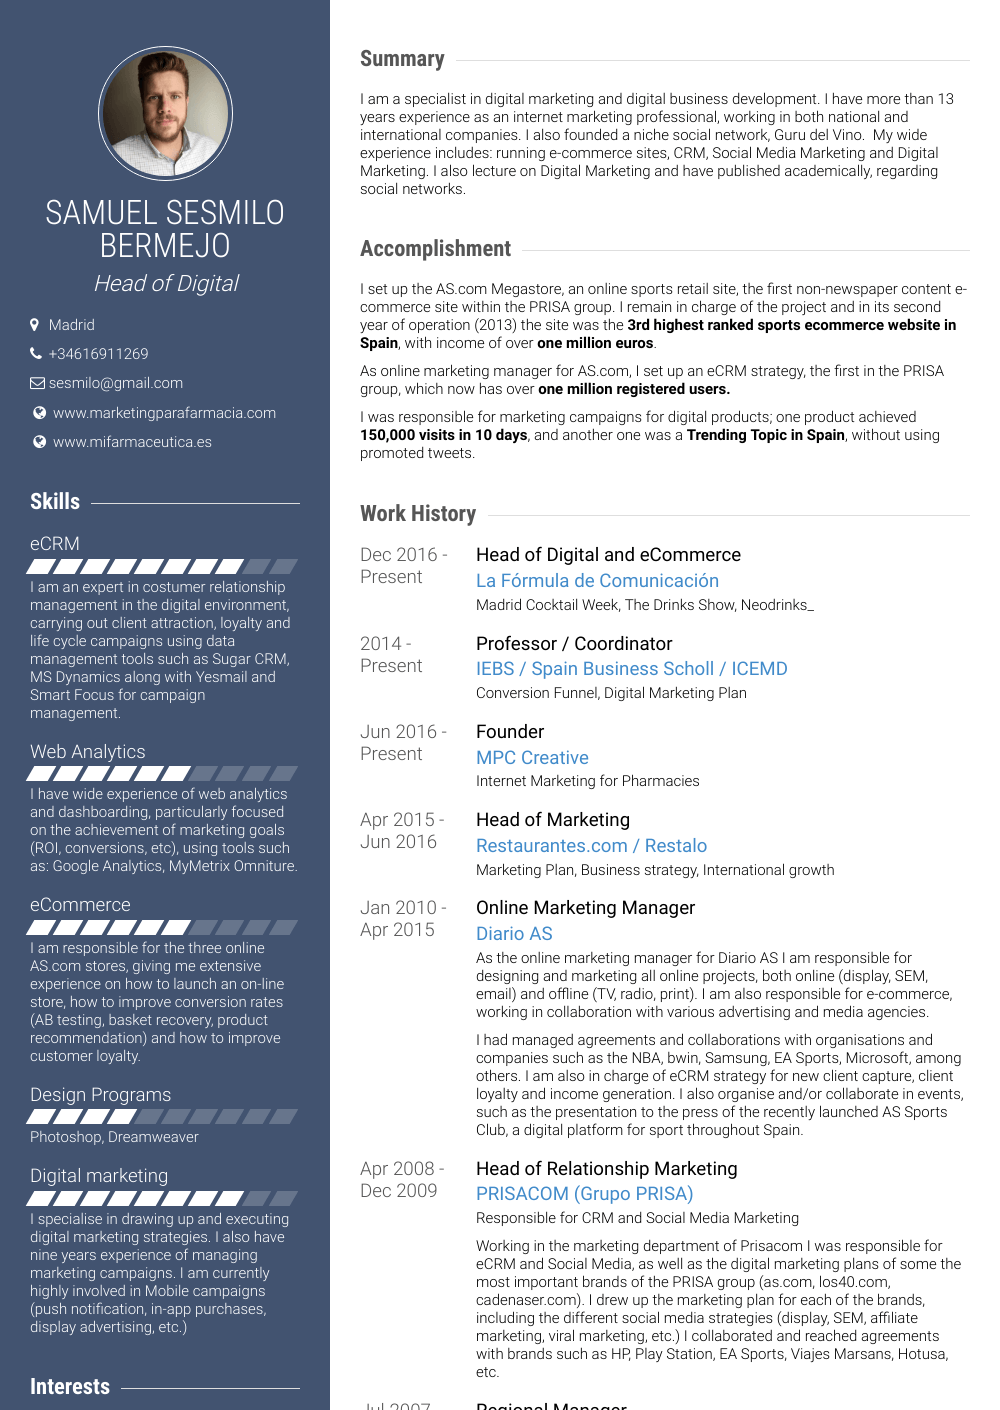 Online Marketing Resume Samples And Templates Visualcv